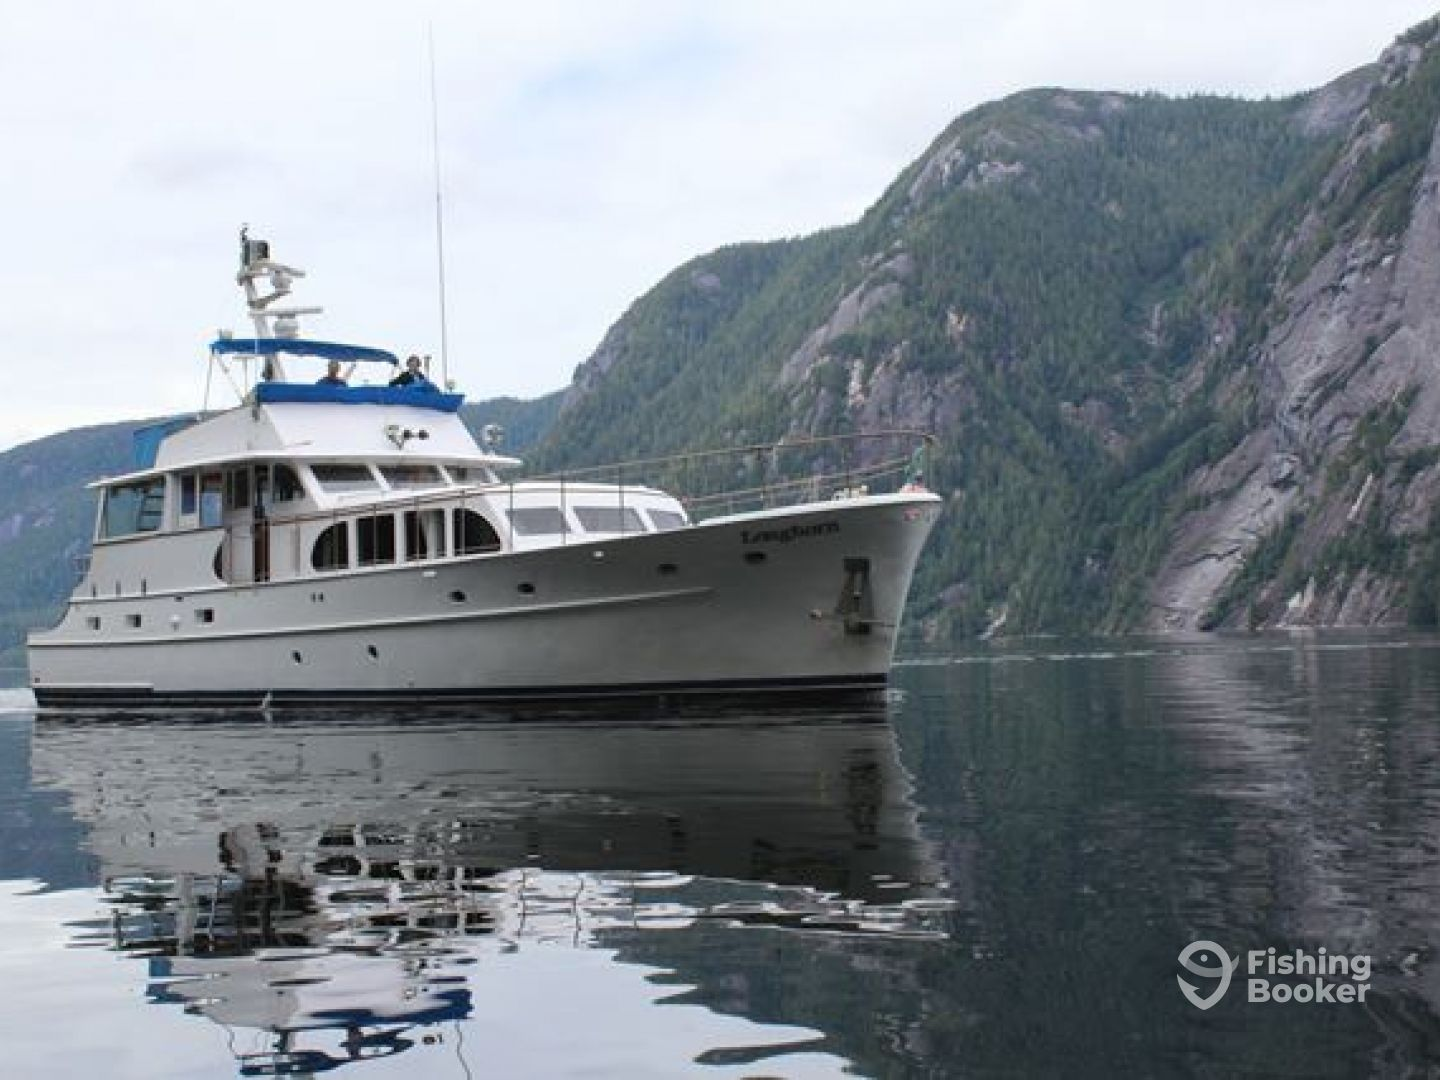 I just found Longhorn Charter on FishingBooker